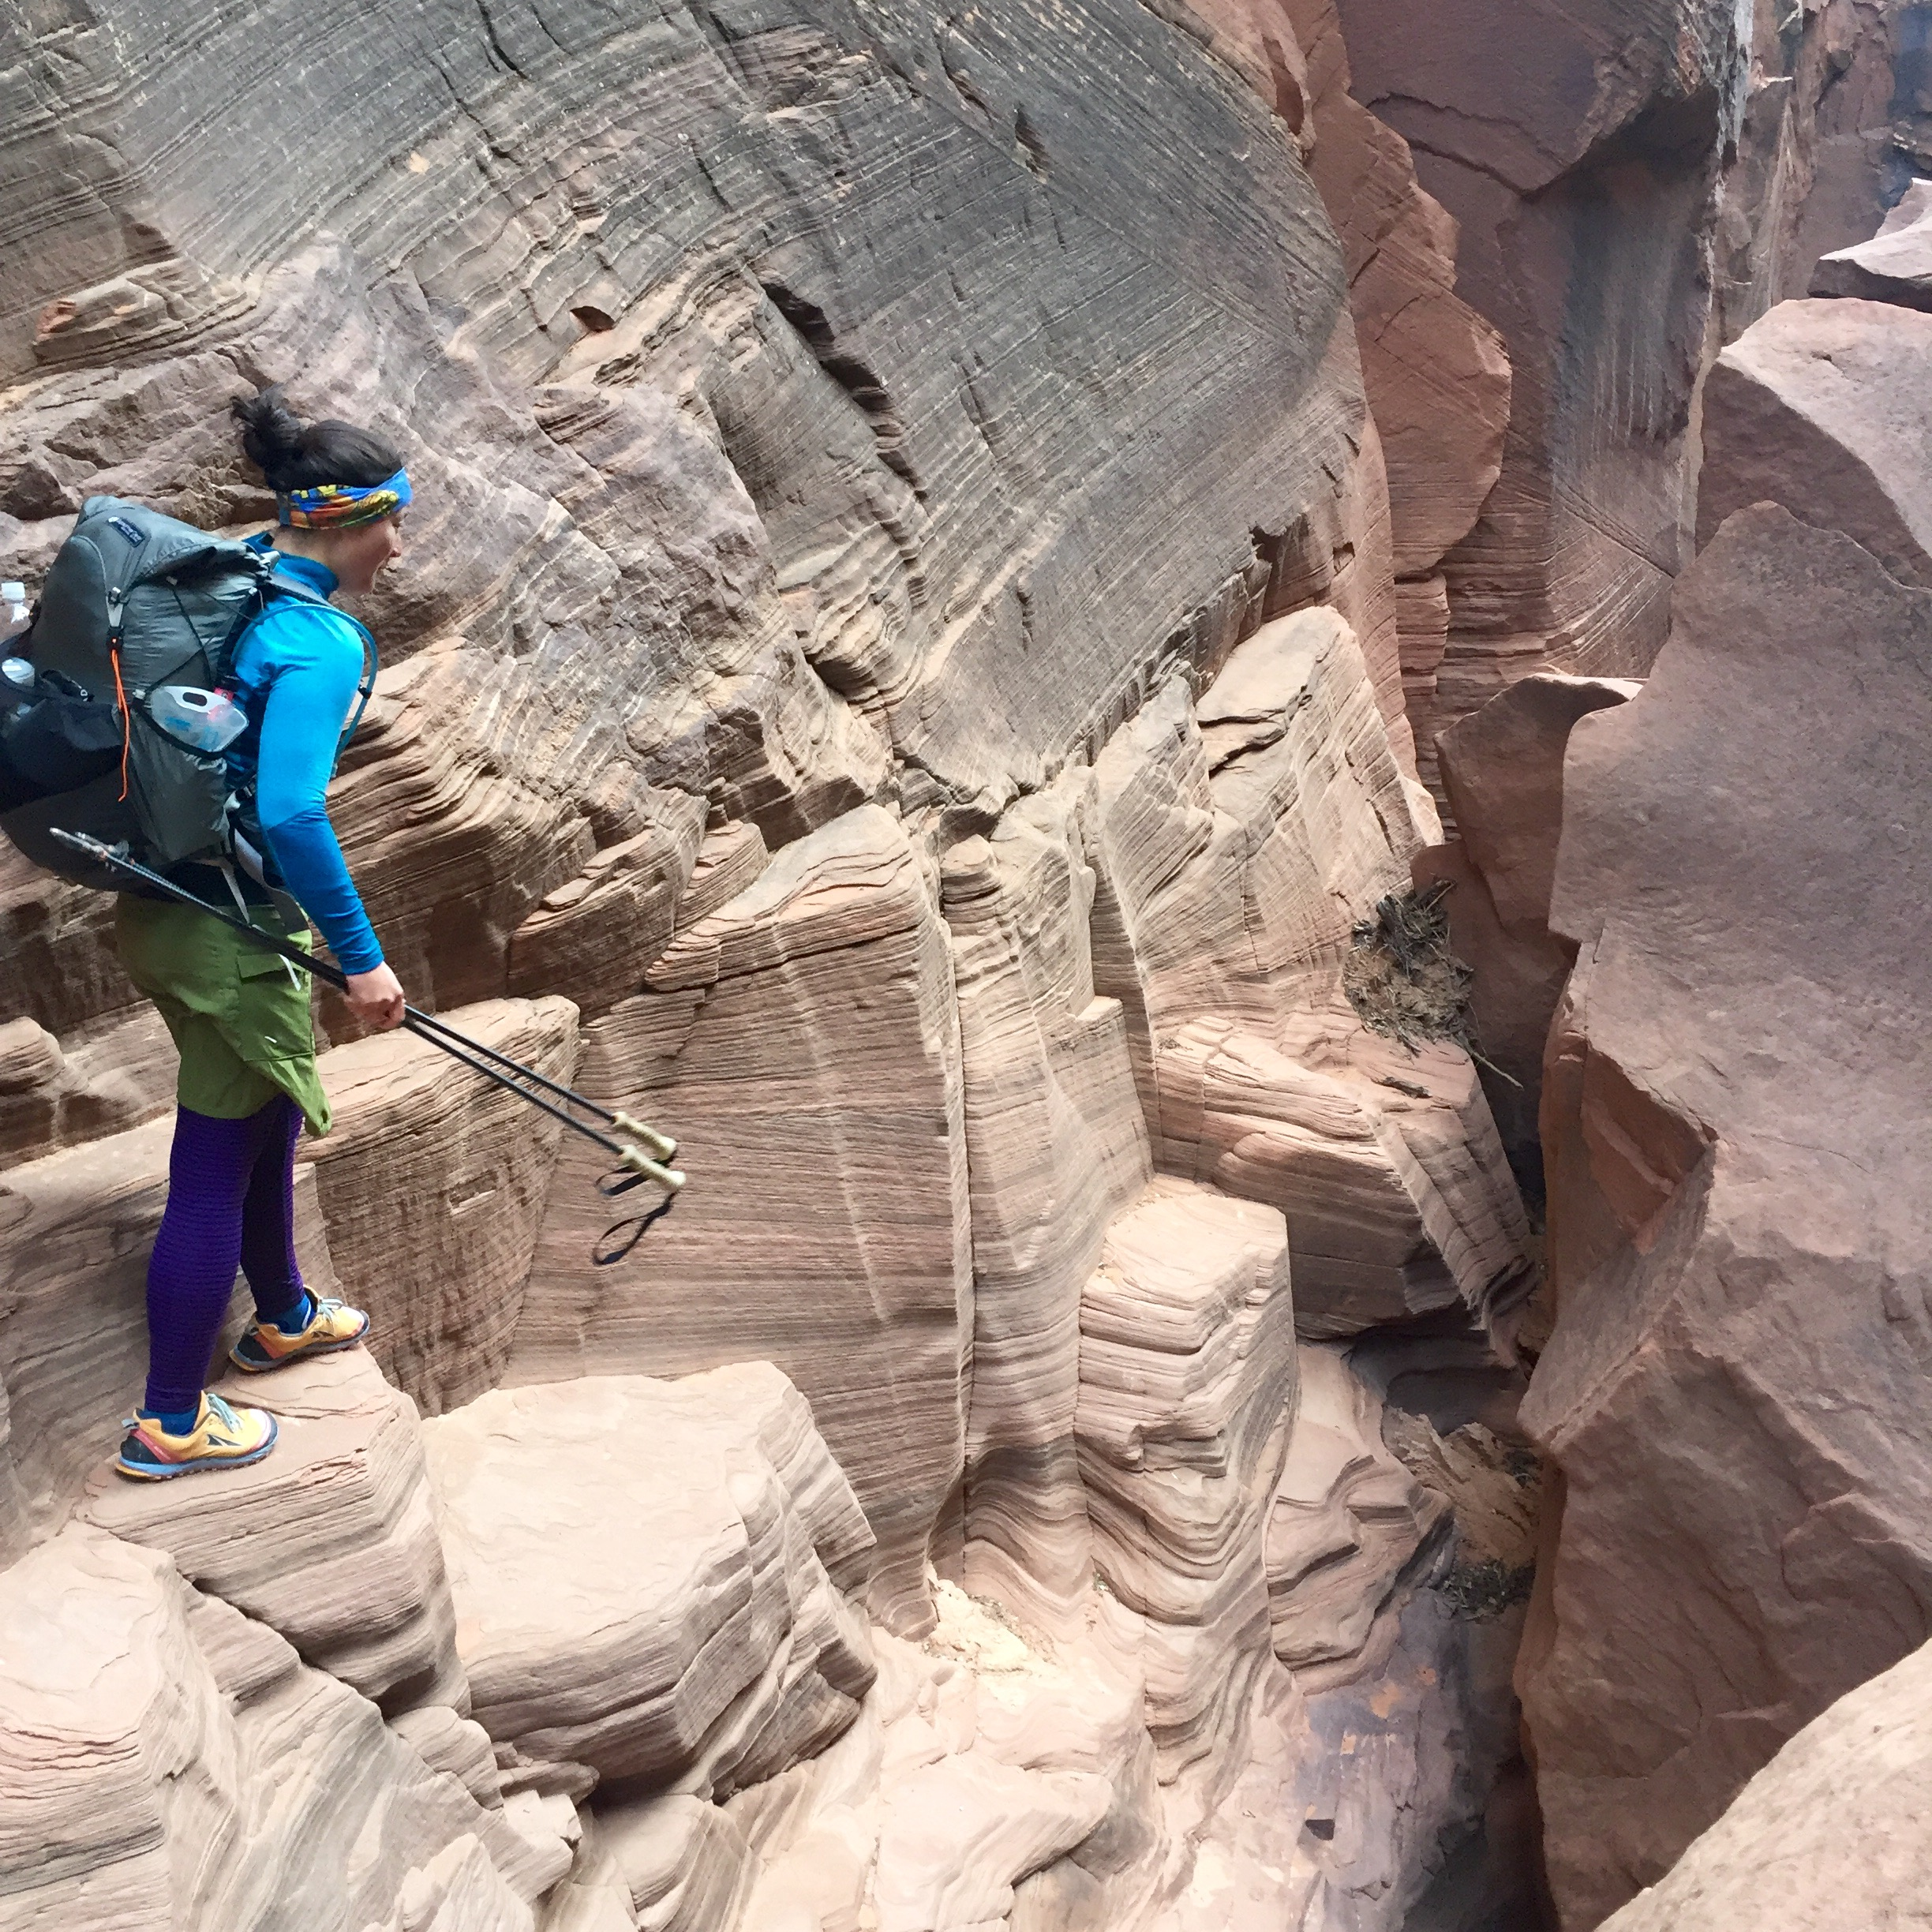 You may be traveling through unlevel terrain. Finding a backpack that is comfortable and fits well not only reduces the chances of shoulder injury or chafing, but keeps your gear more secure.   Photo by Duncan Cheung.